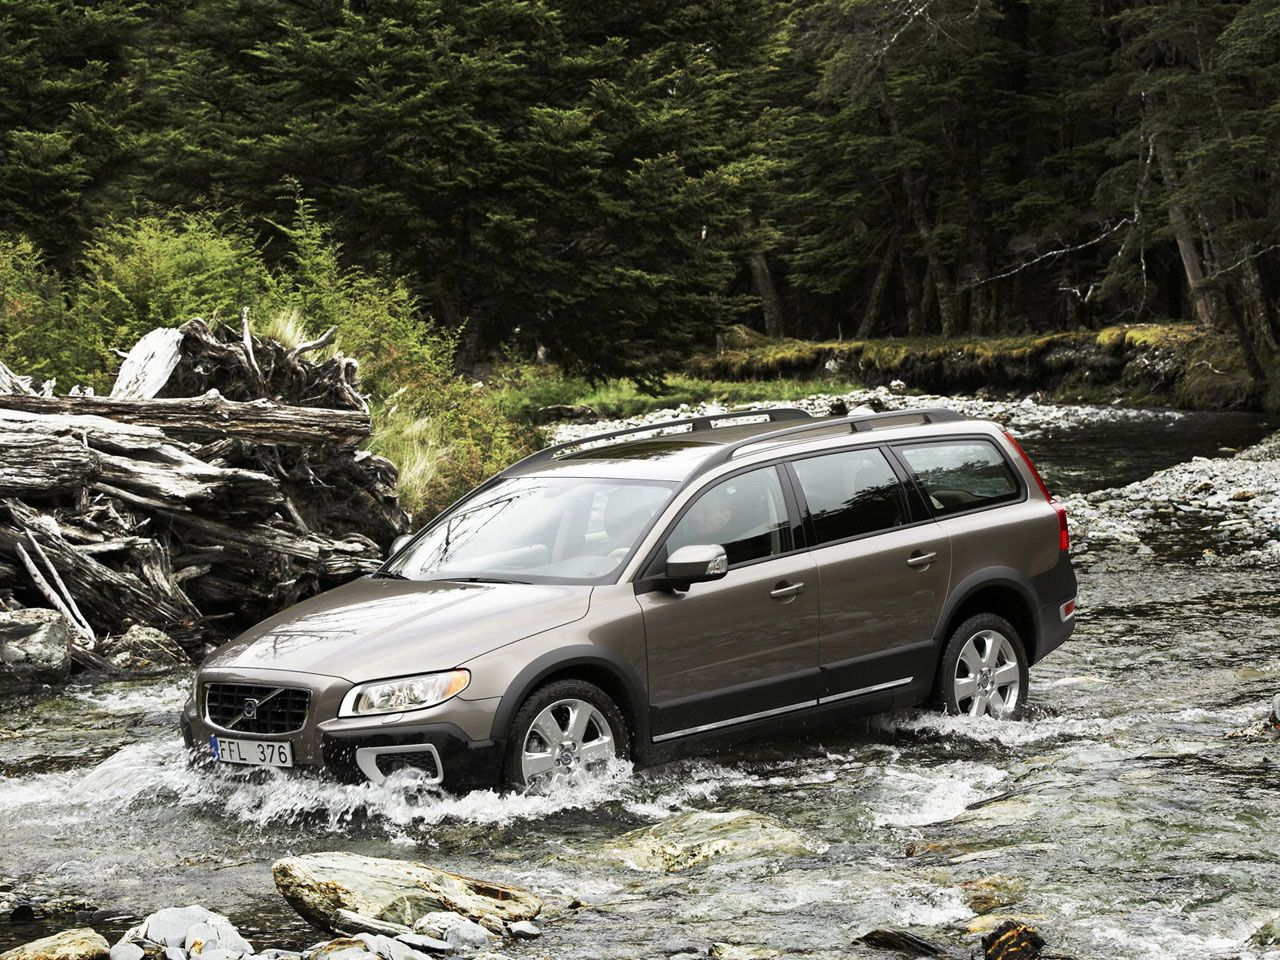 The volvo xc70 is a beast of a machine that can take on almost any off